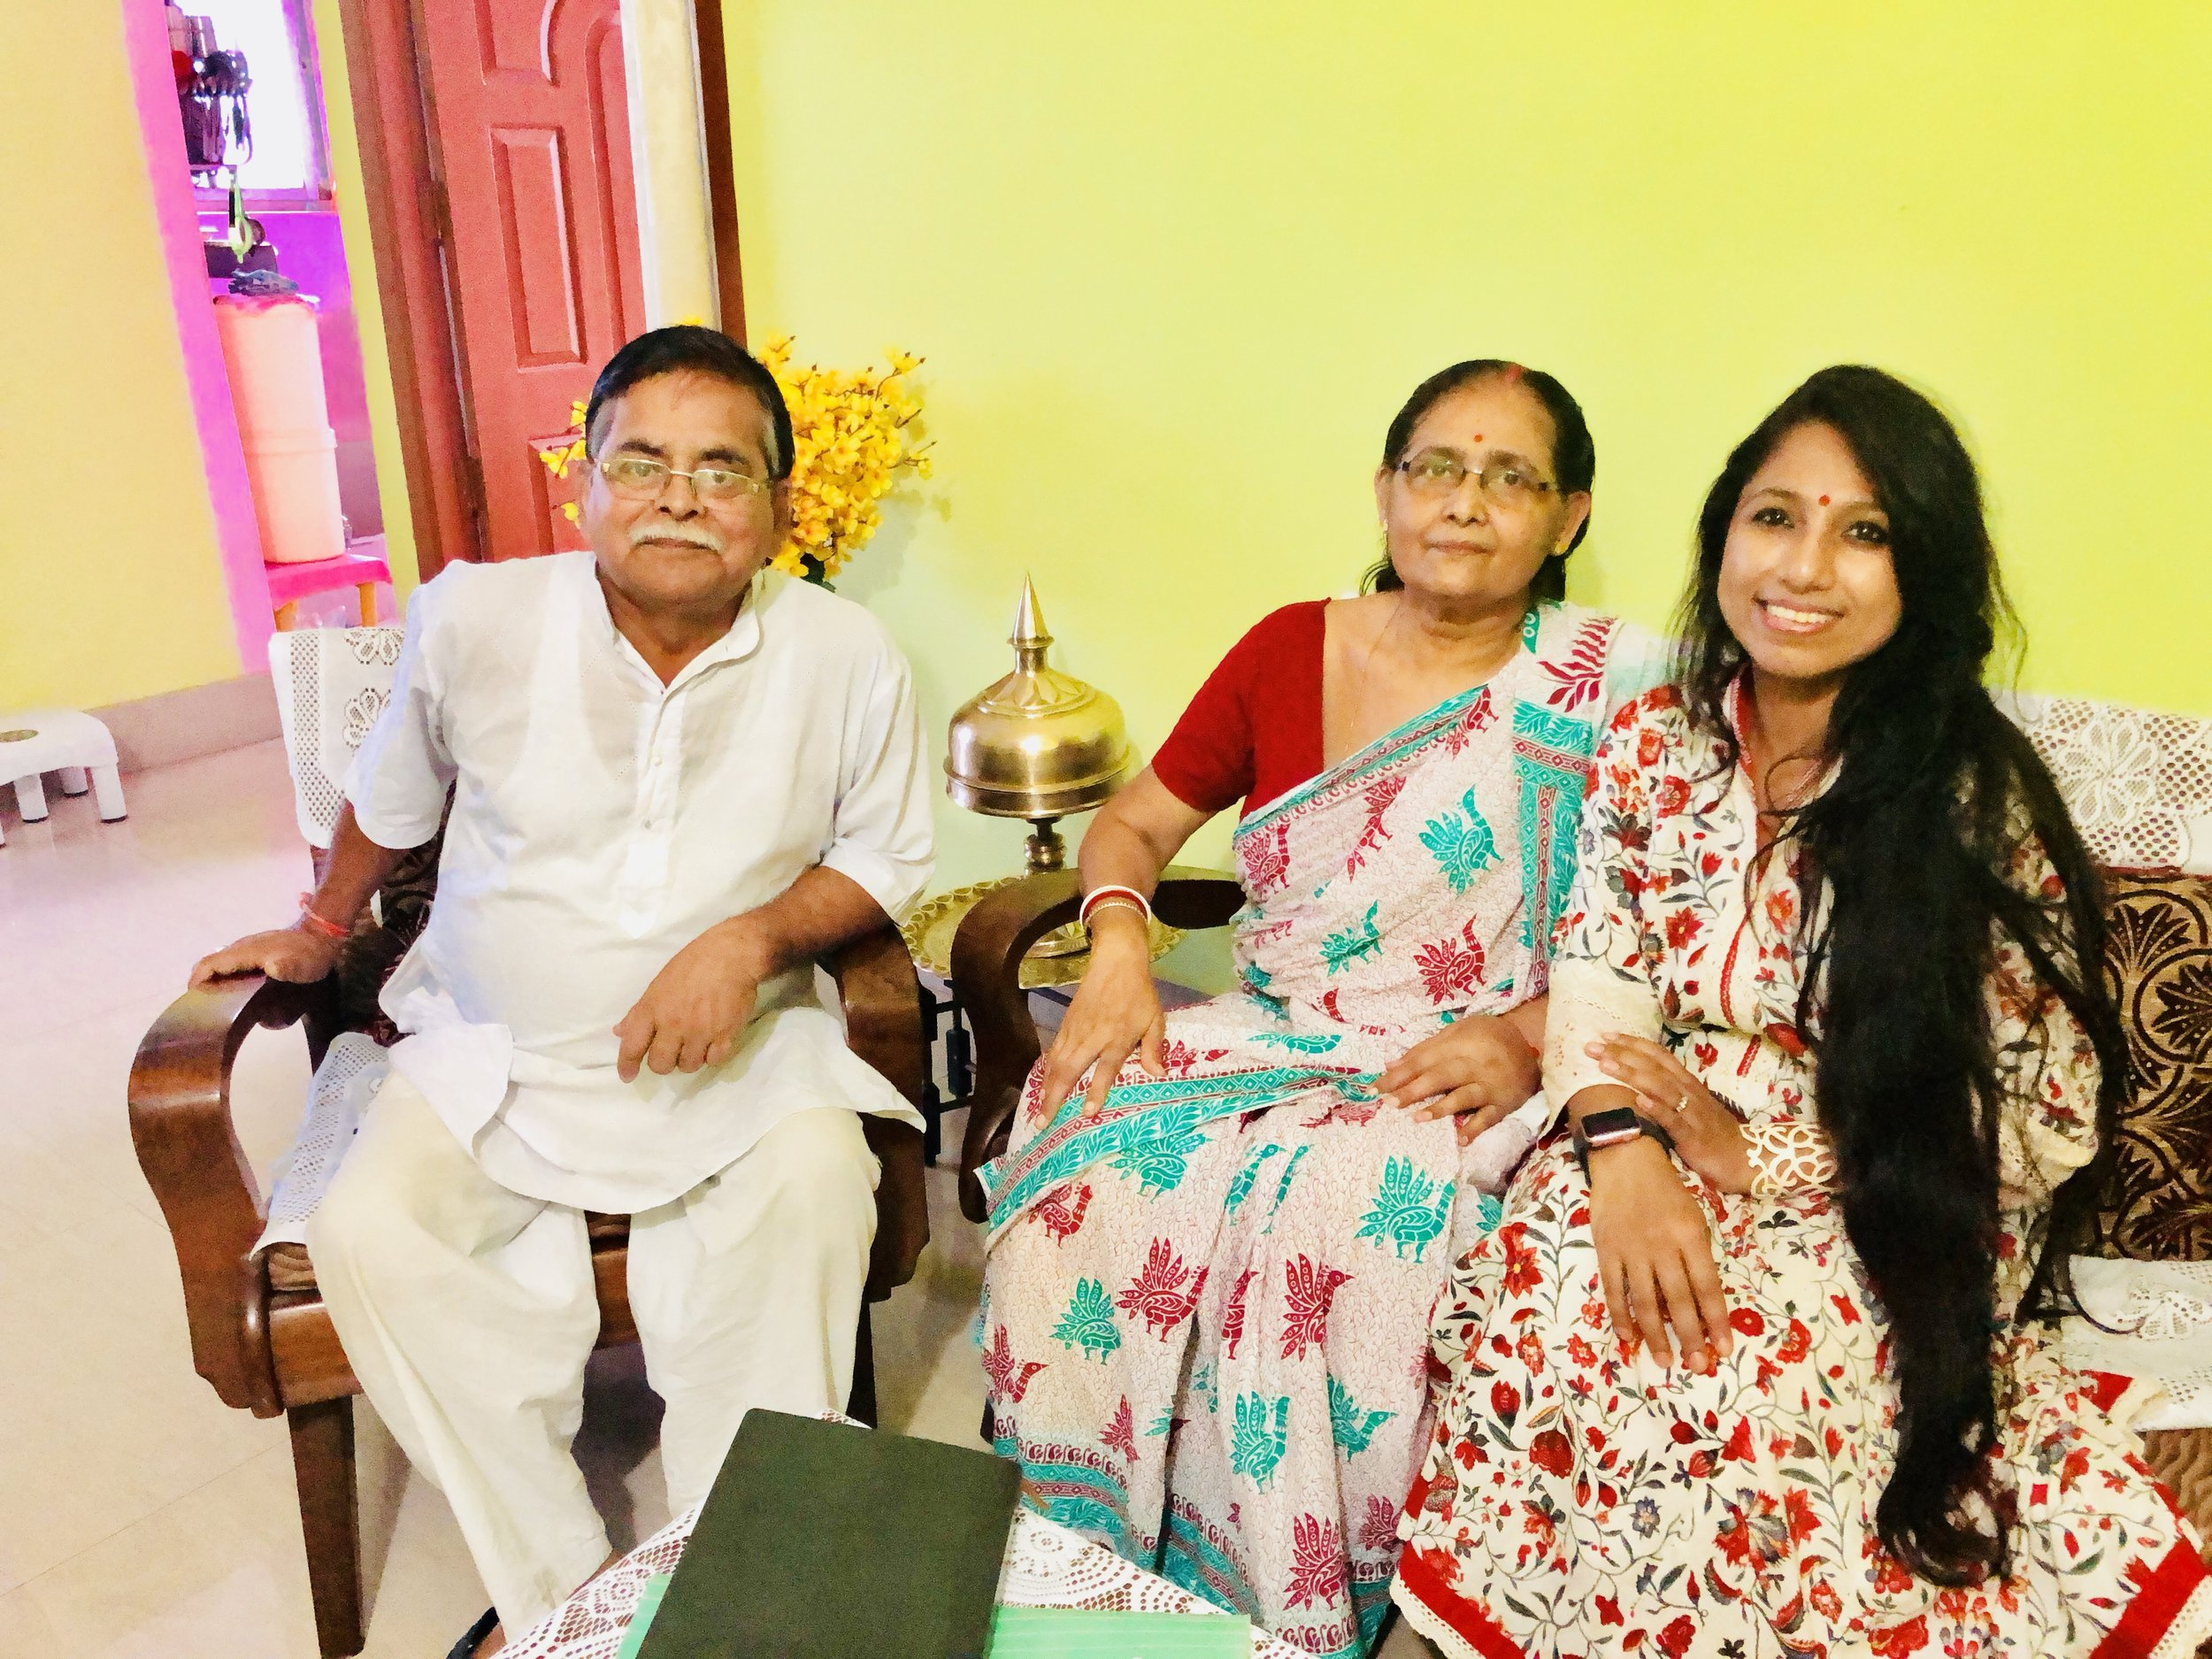 Mrs. Kalpana Choudhury, 10 year survivor, diagnosed at Stage III with her very supportive and caring husband Mr. Kshitish Chudhury.